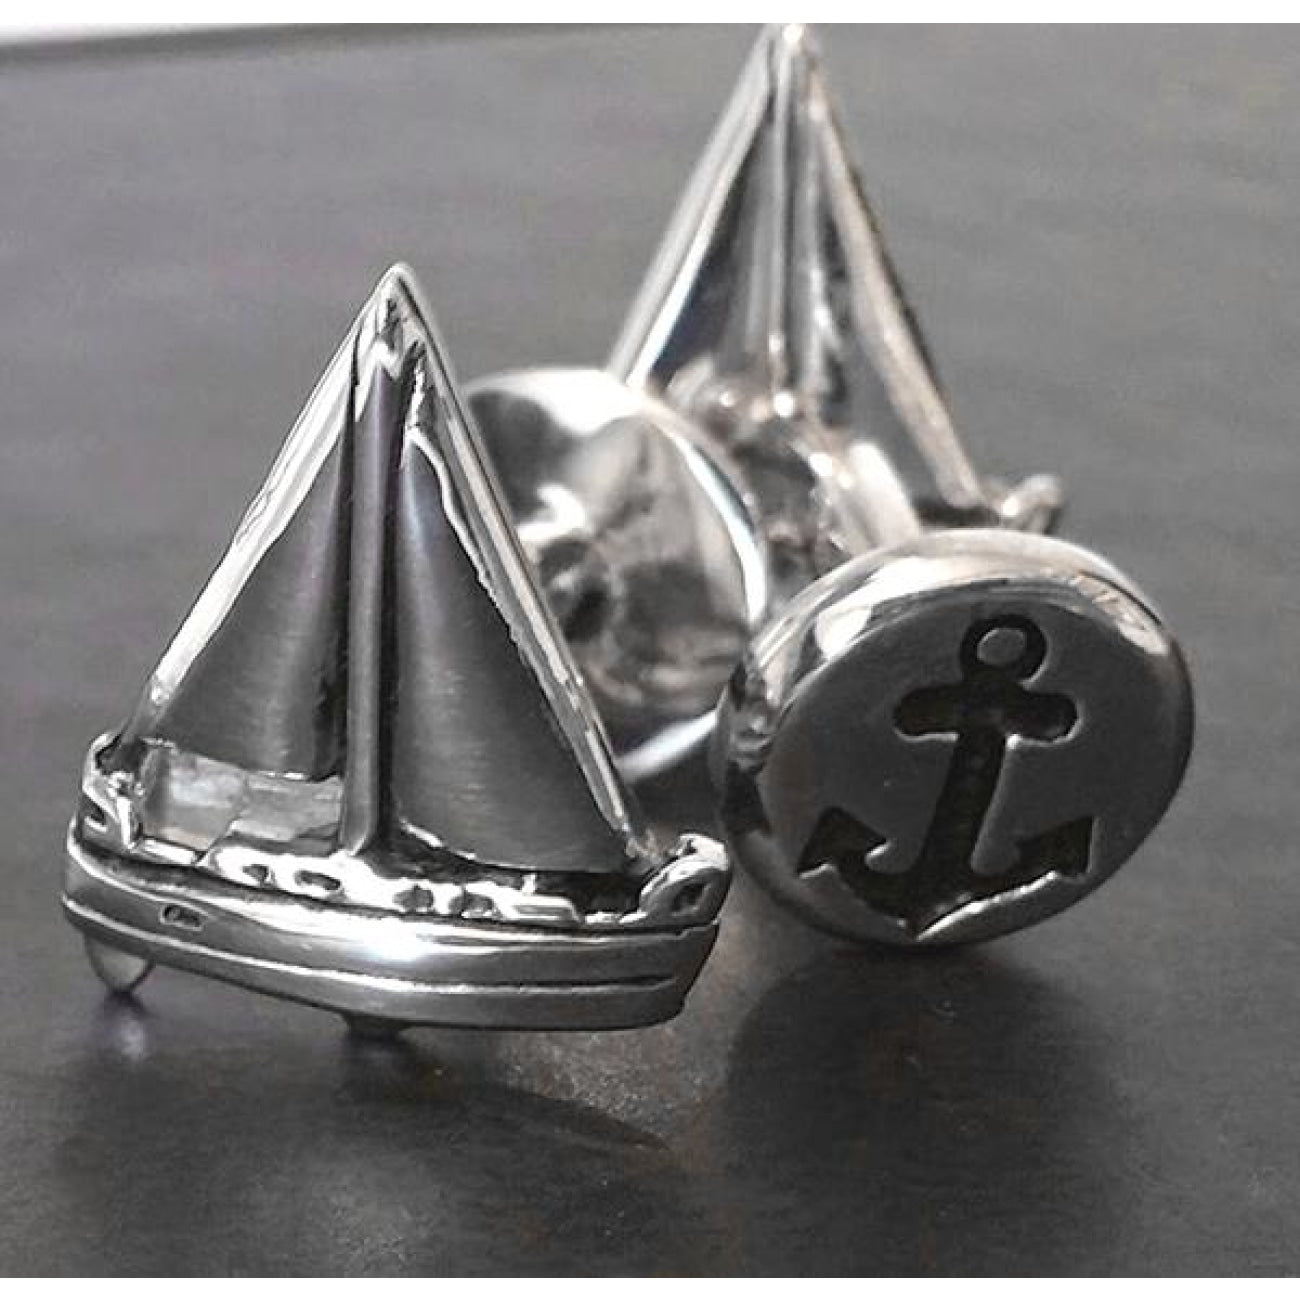 Manfredi Jewels Accessories - Sailboat in Sterling Silver | Manfredi Jewels